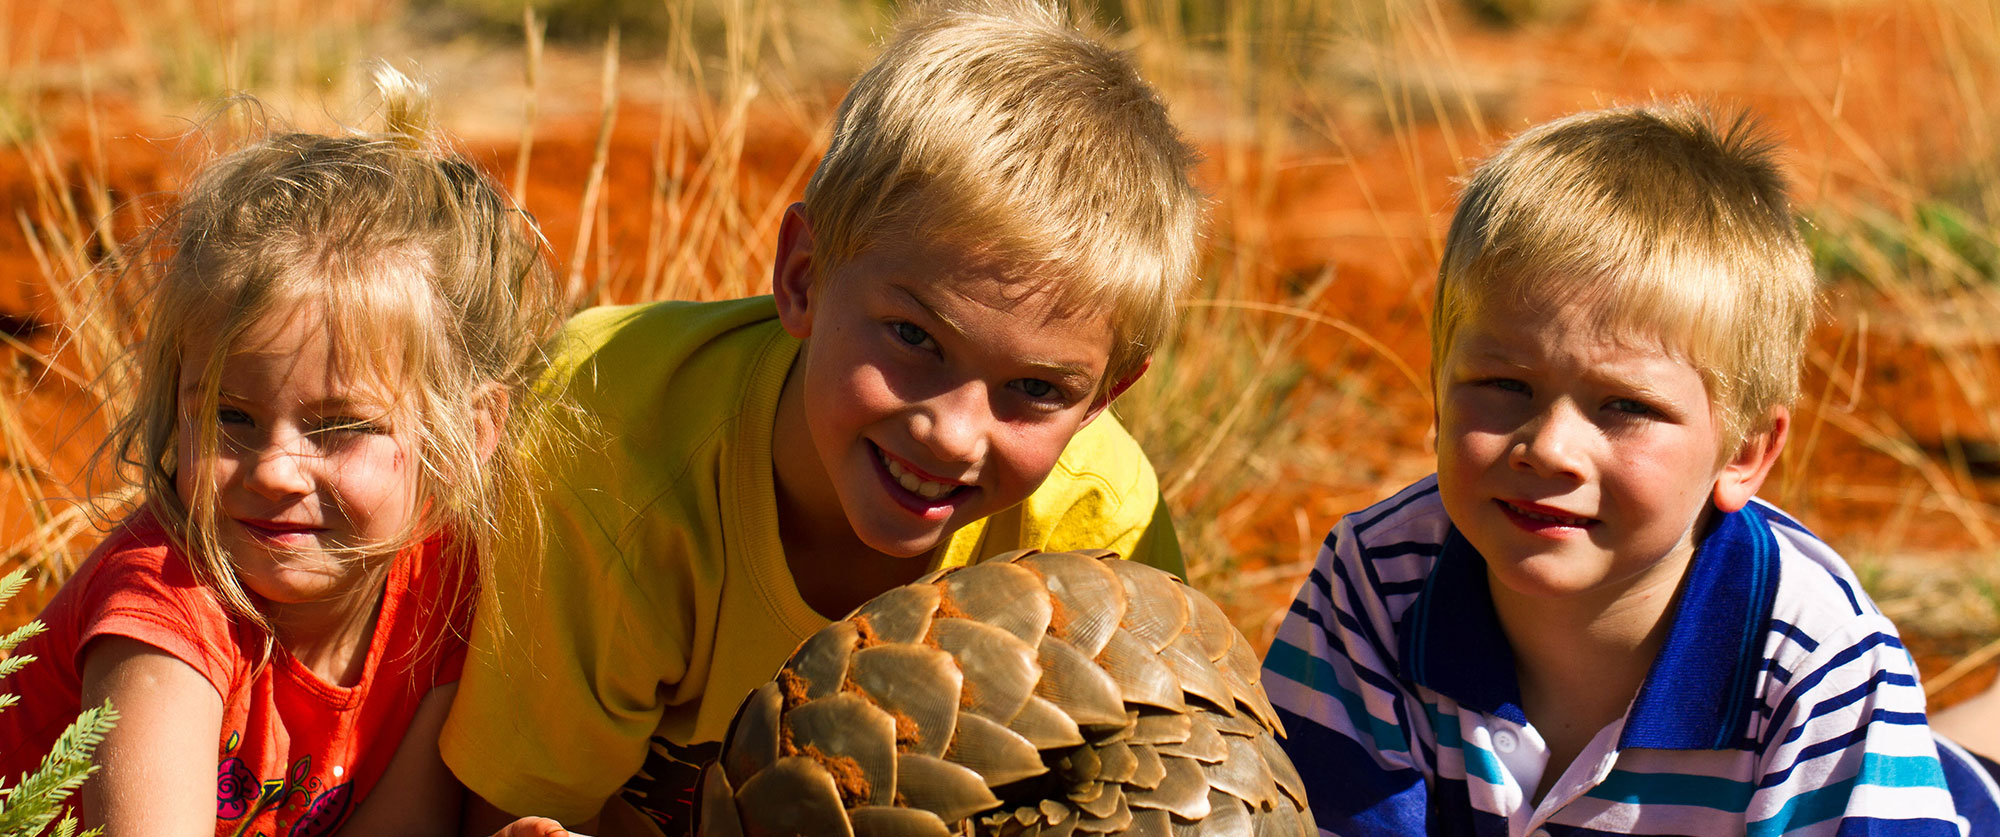 Family Travel - Travel Specialists - Africa